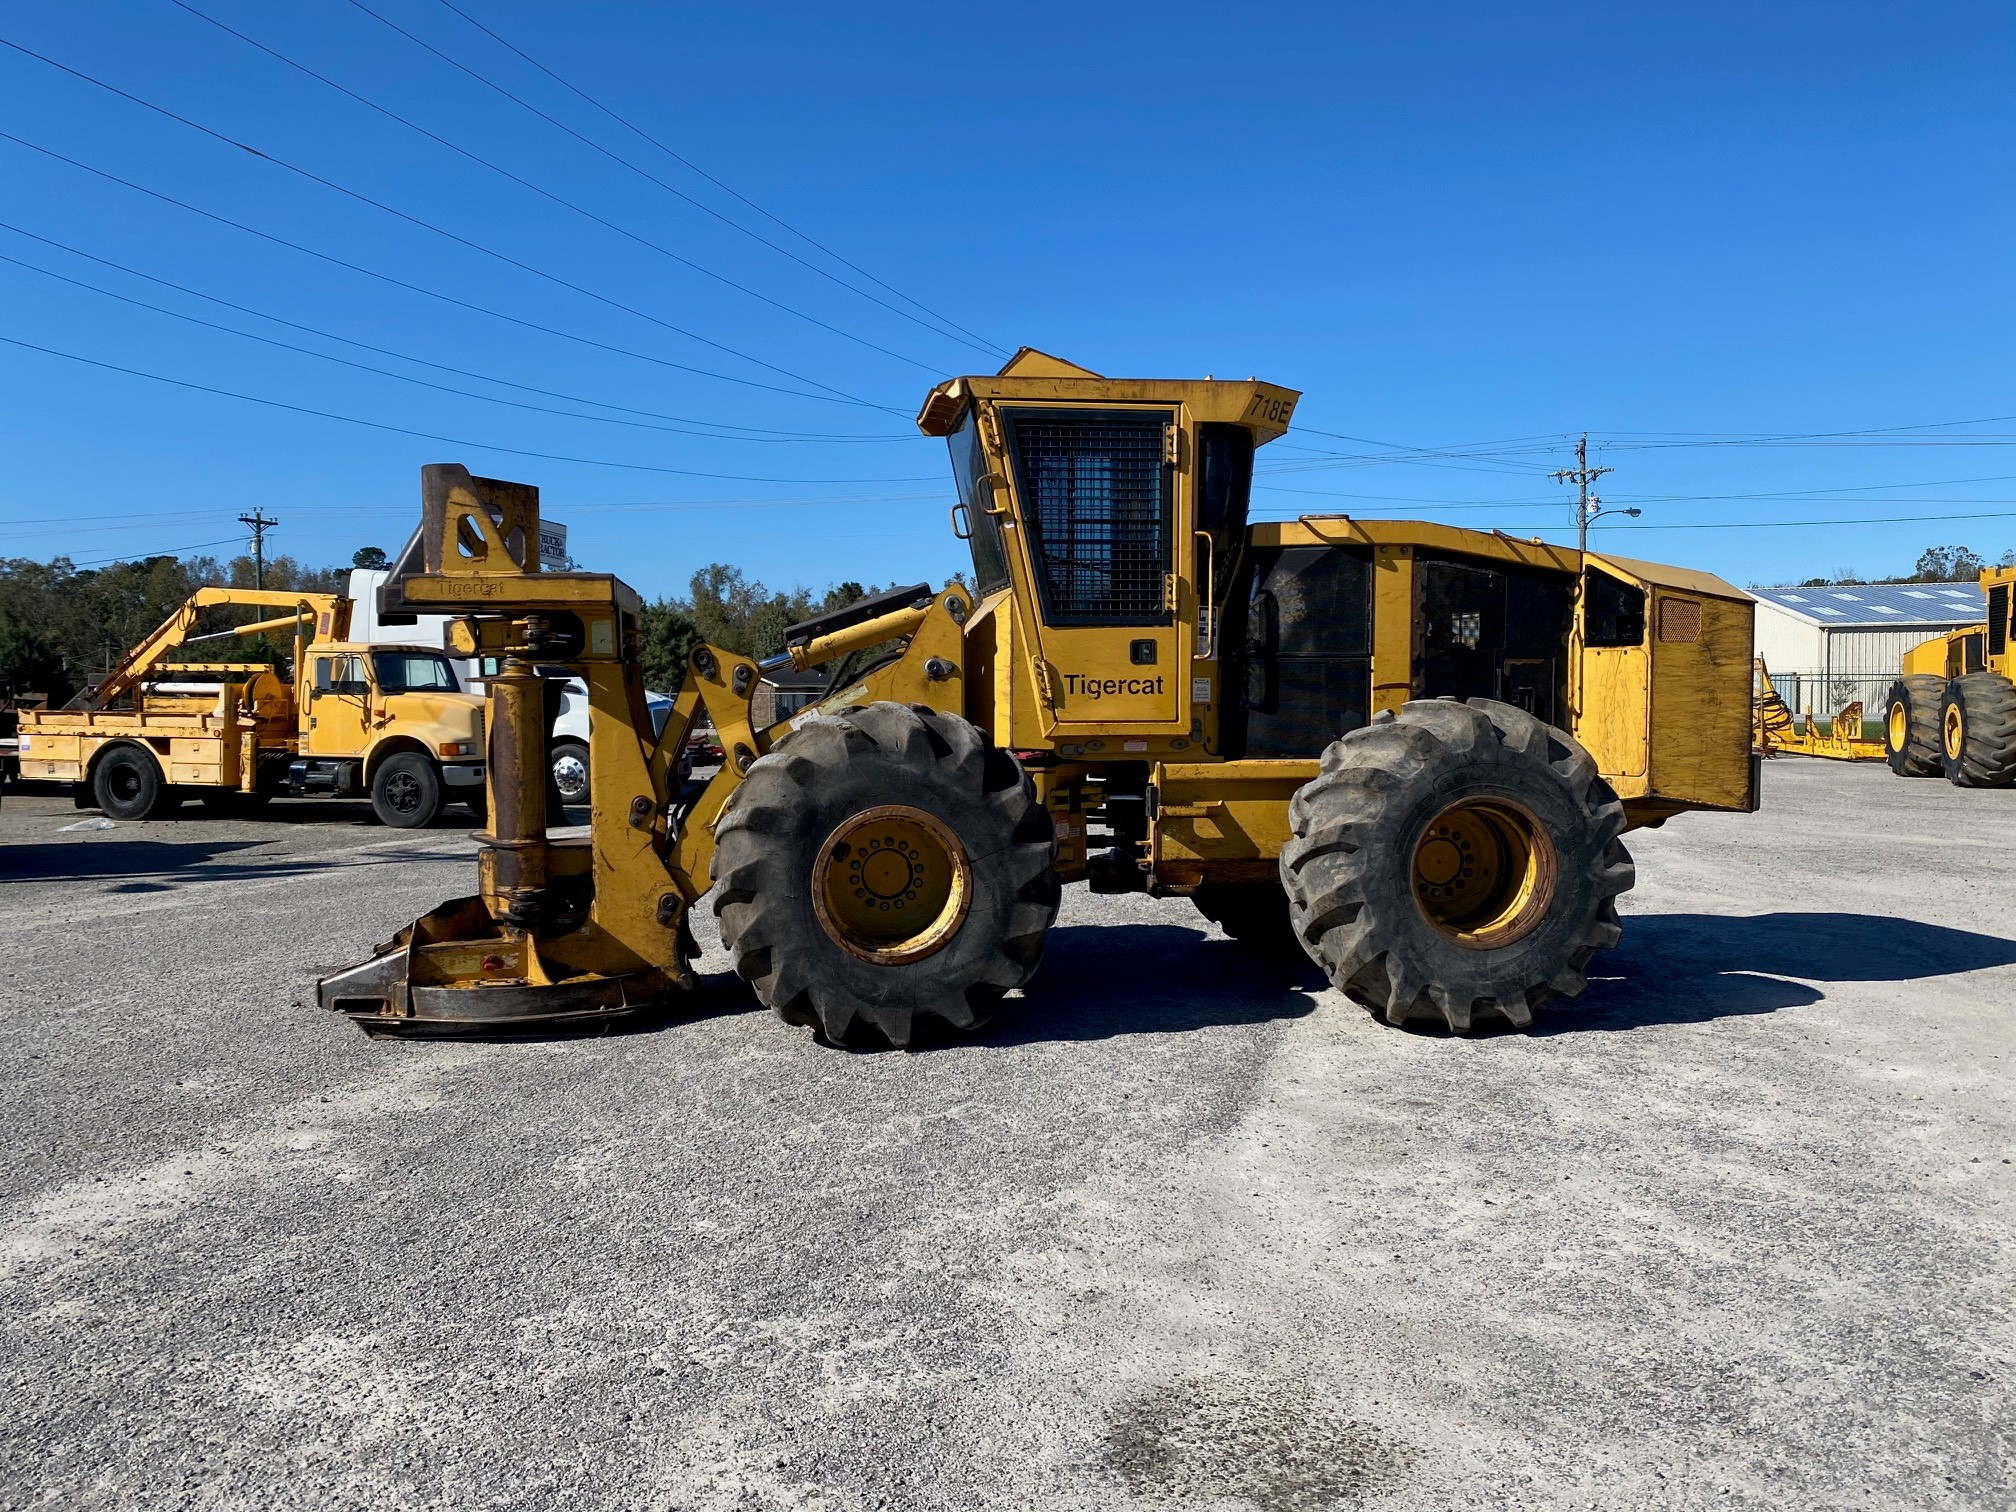 2008 Tigercat 718E feller buncher for sale